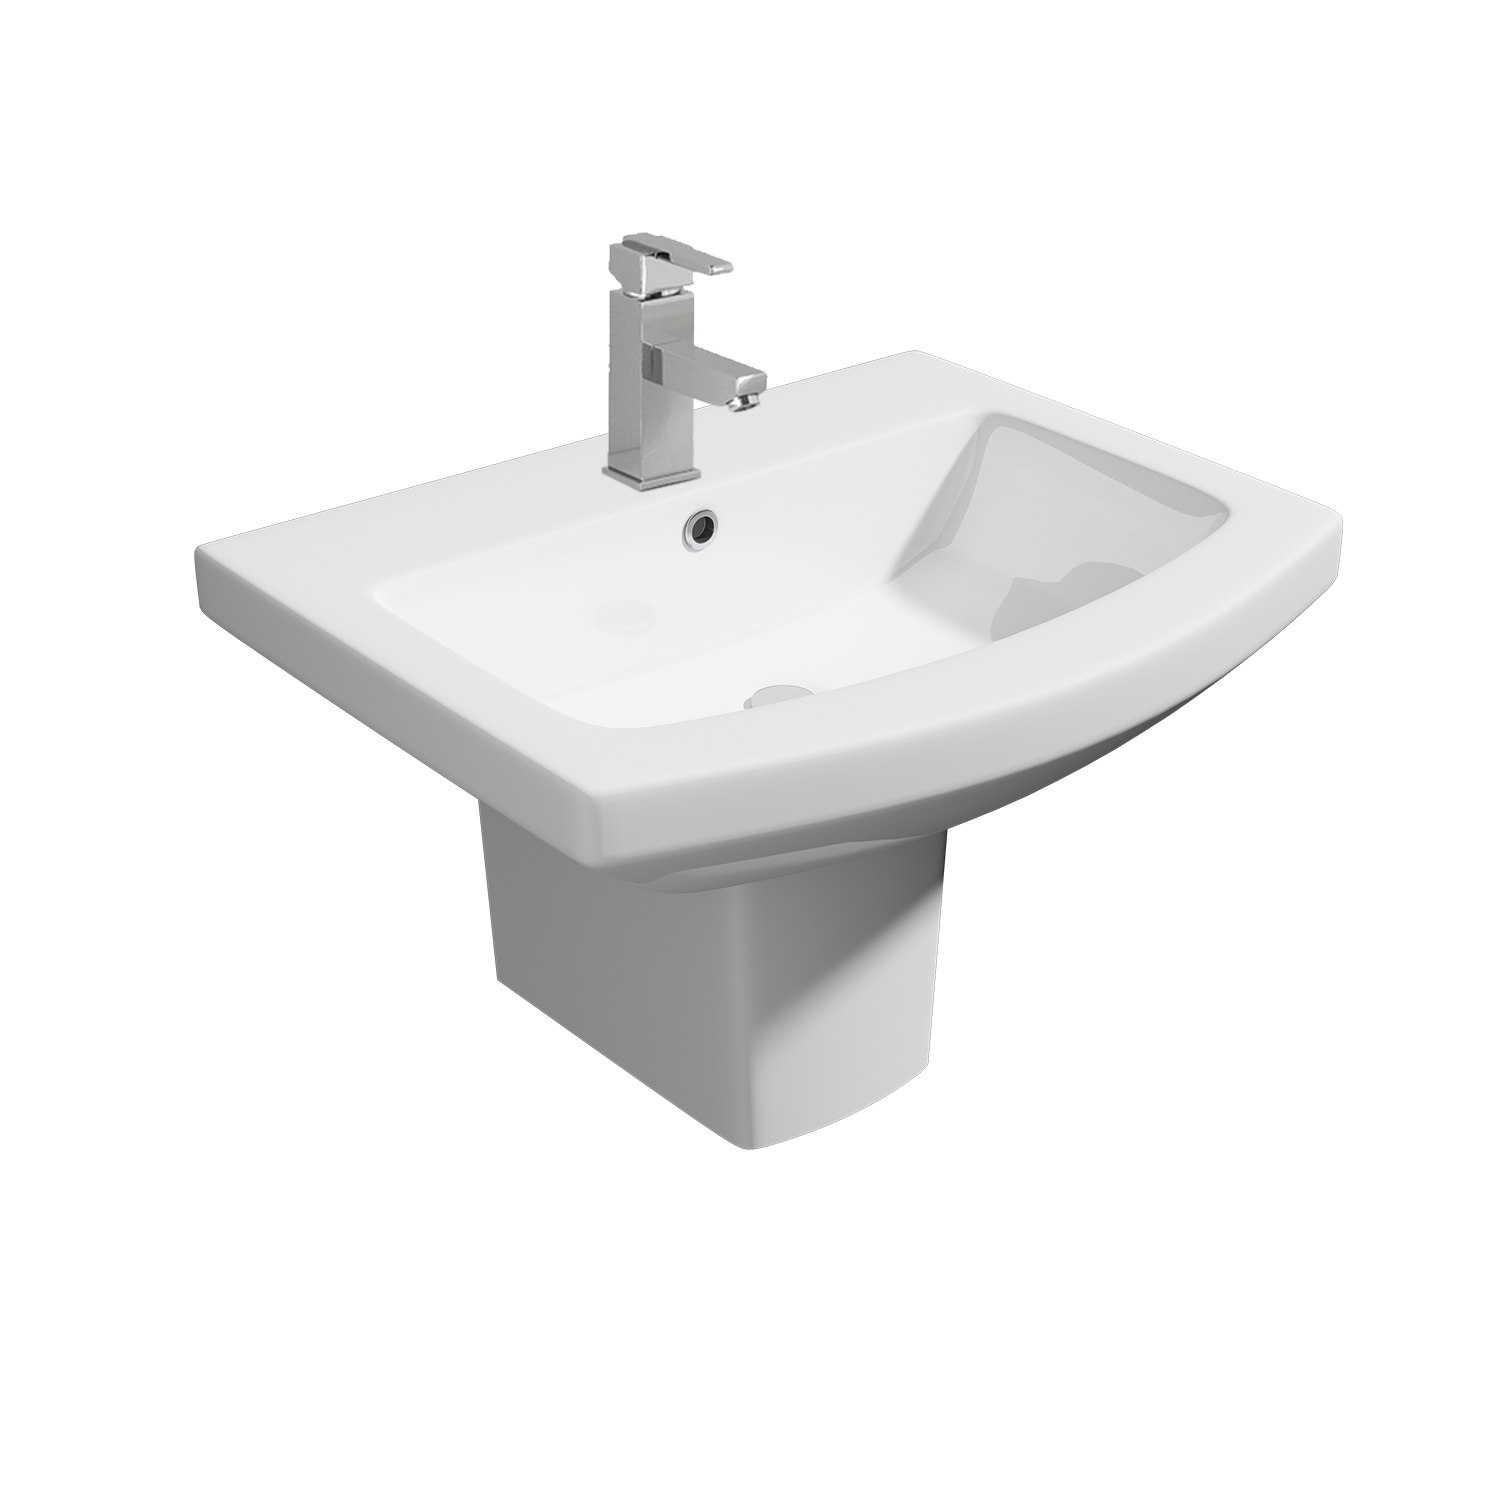 K-Vit Trim 550mm 1TH Basin & Semi-Pedestal